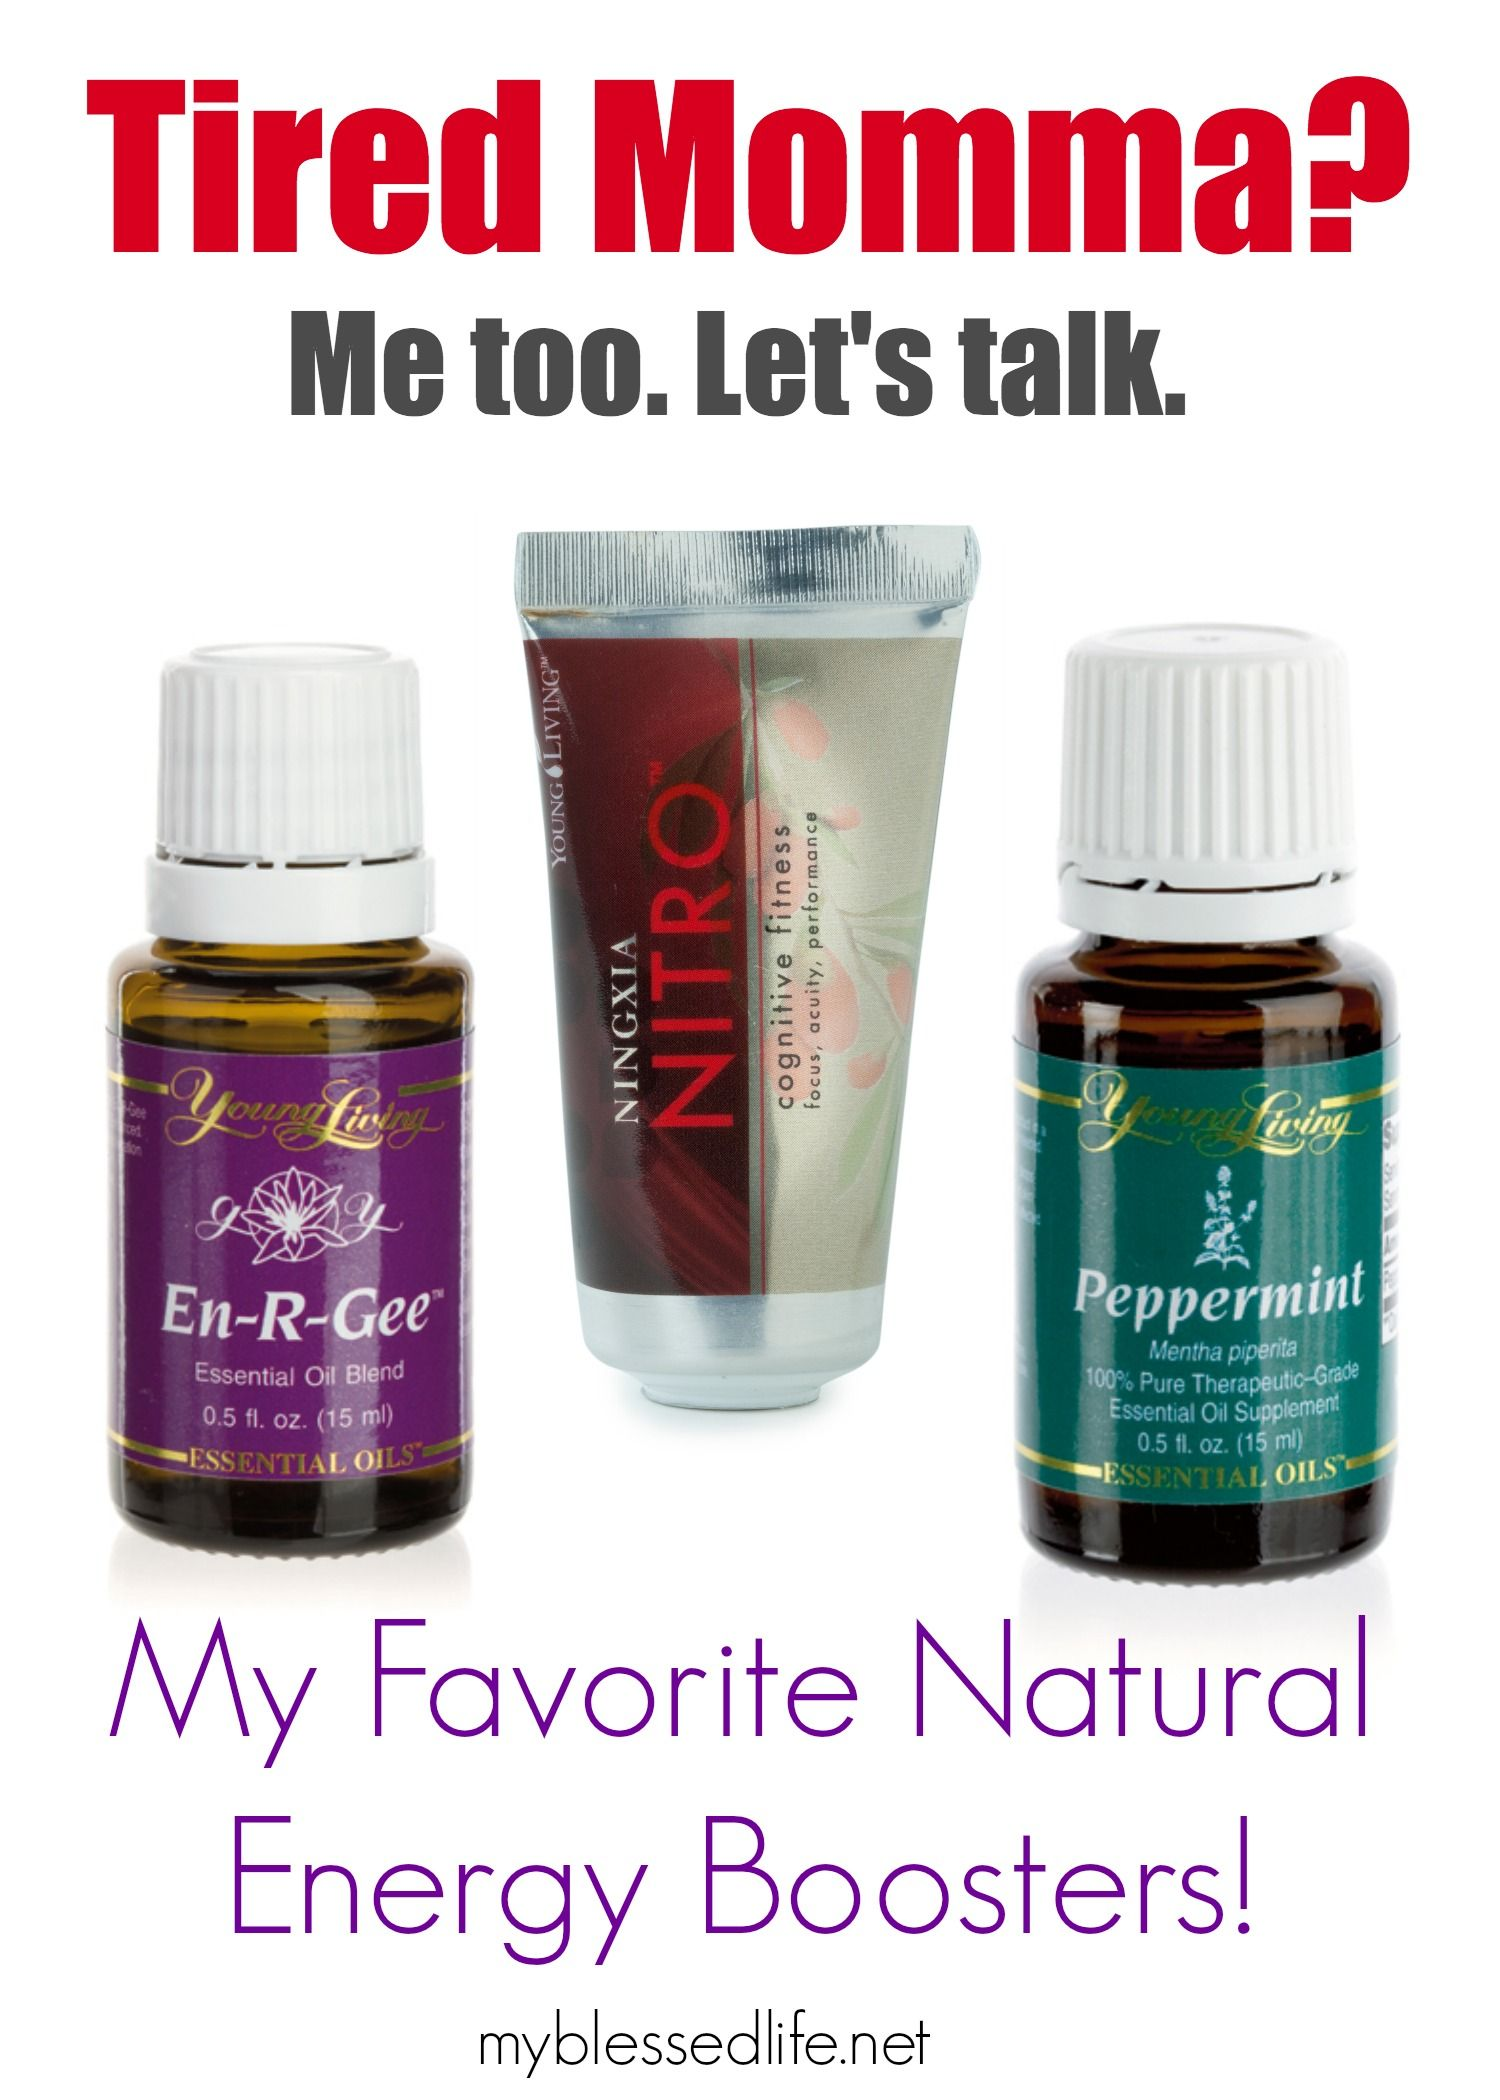 Amazing Natural Energy Boosters LEARN MORE and ORDER HERE: HeavenScentOils4U... #yleo #youngliving #essentialoils #heavenscentoils4u #naturalremedies #essential #oils #energyboost